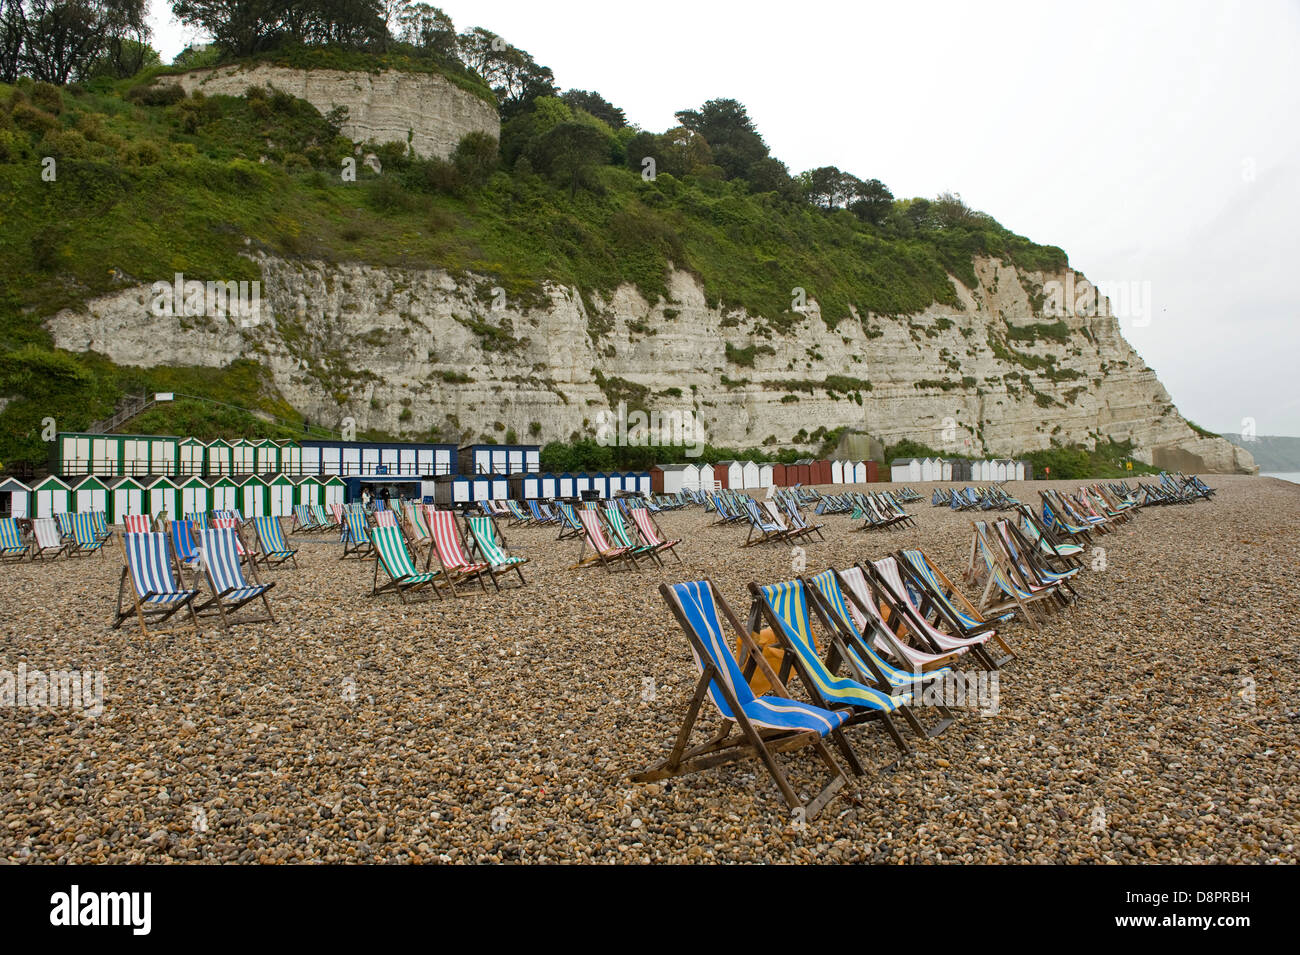 Wet summer day on Beer Beach in Devon with unused deck chairs - Stock Image